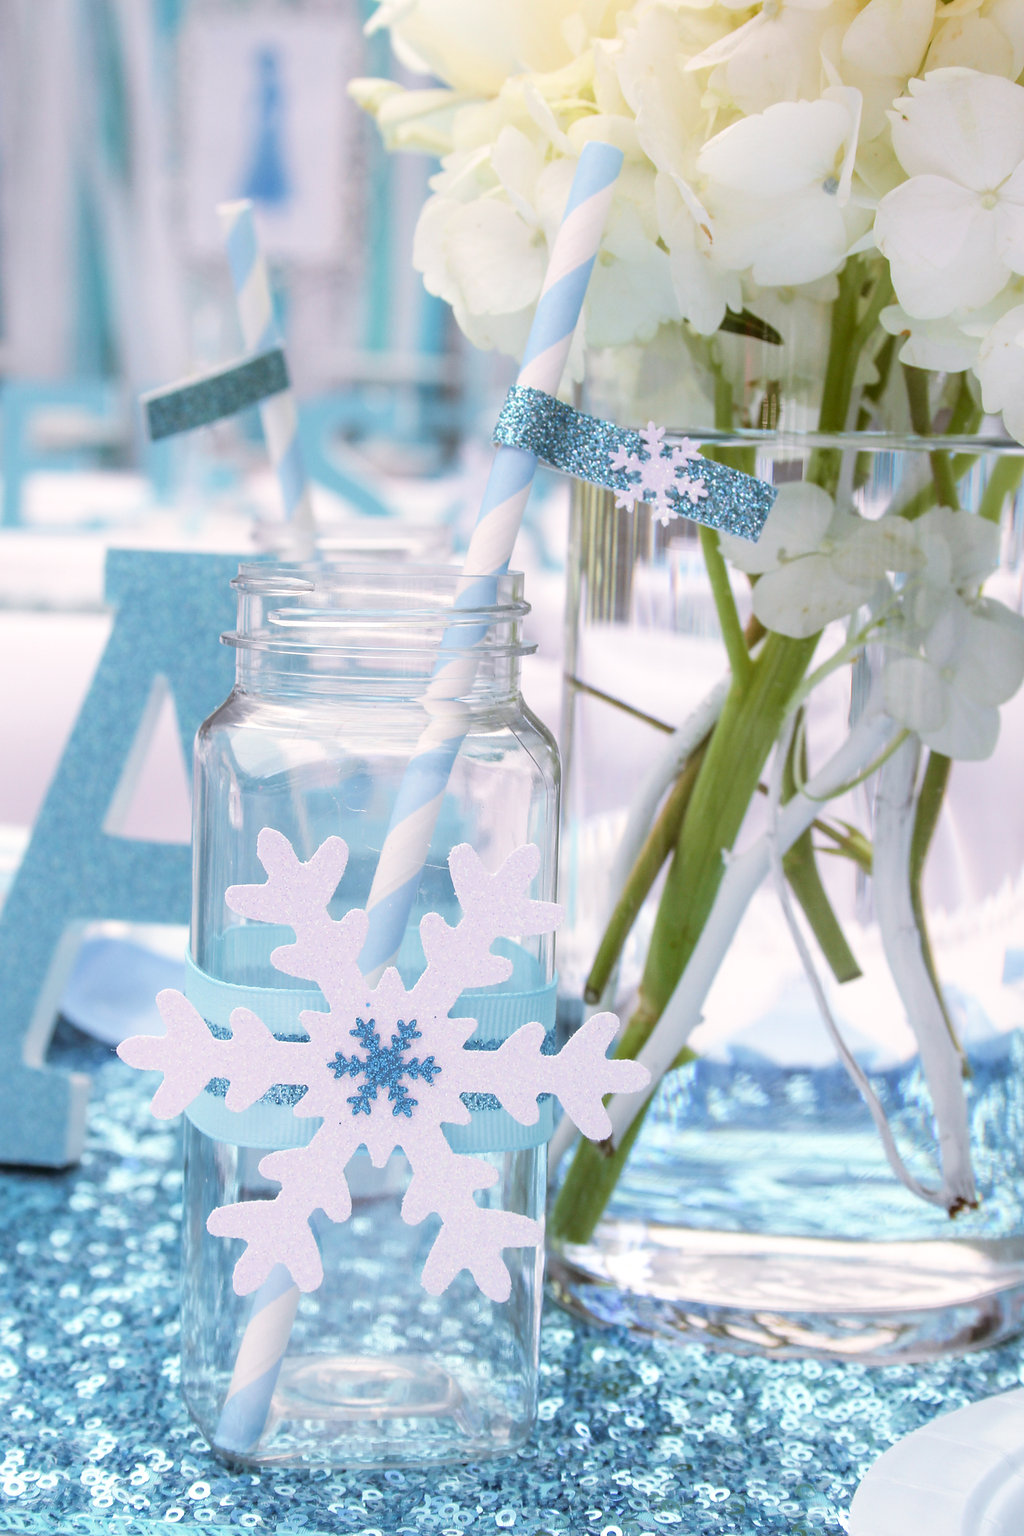 sweetly chic events & design frozen party drink bottles and straws with straw flags